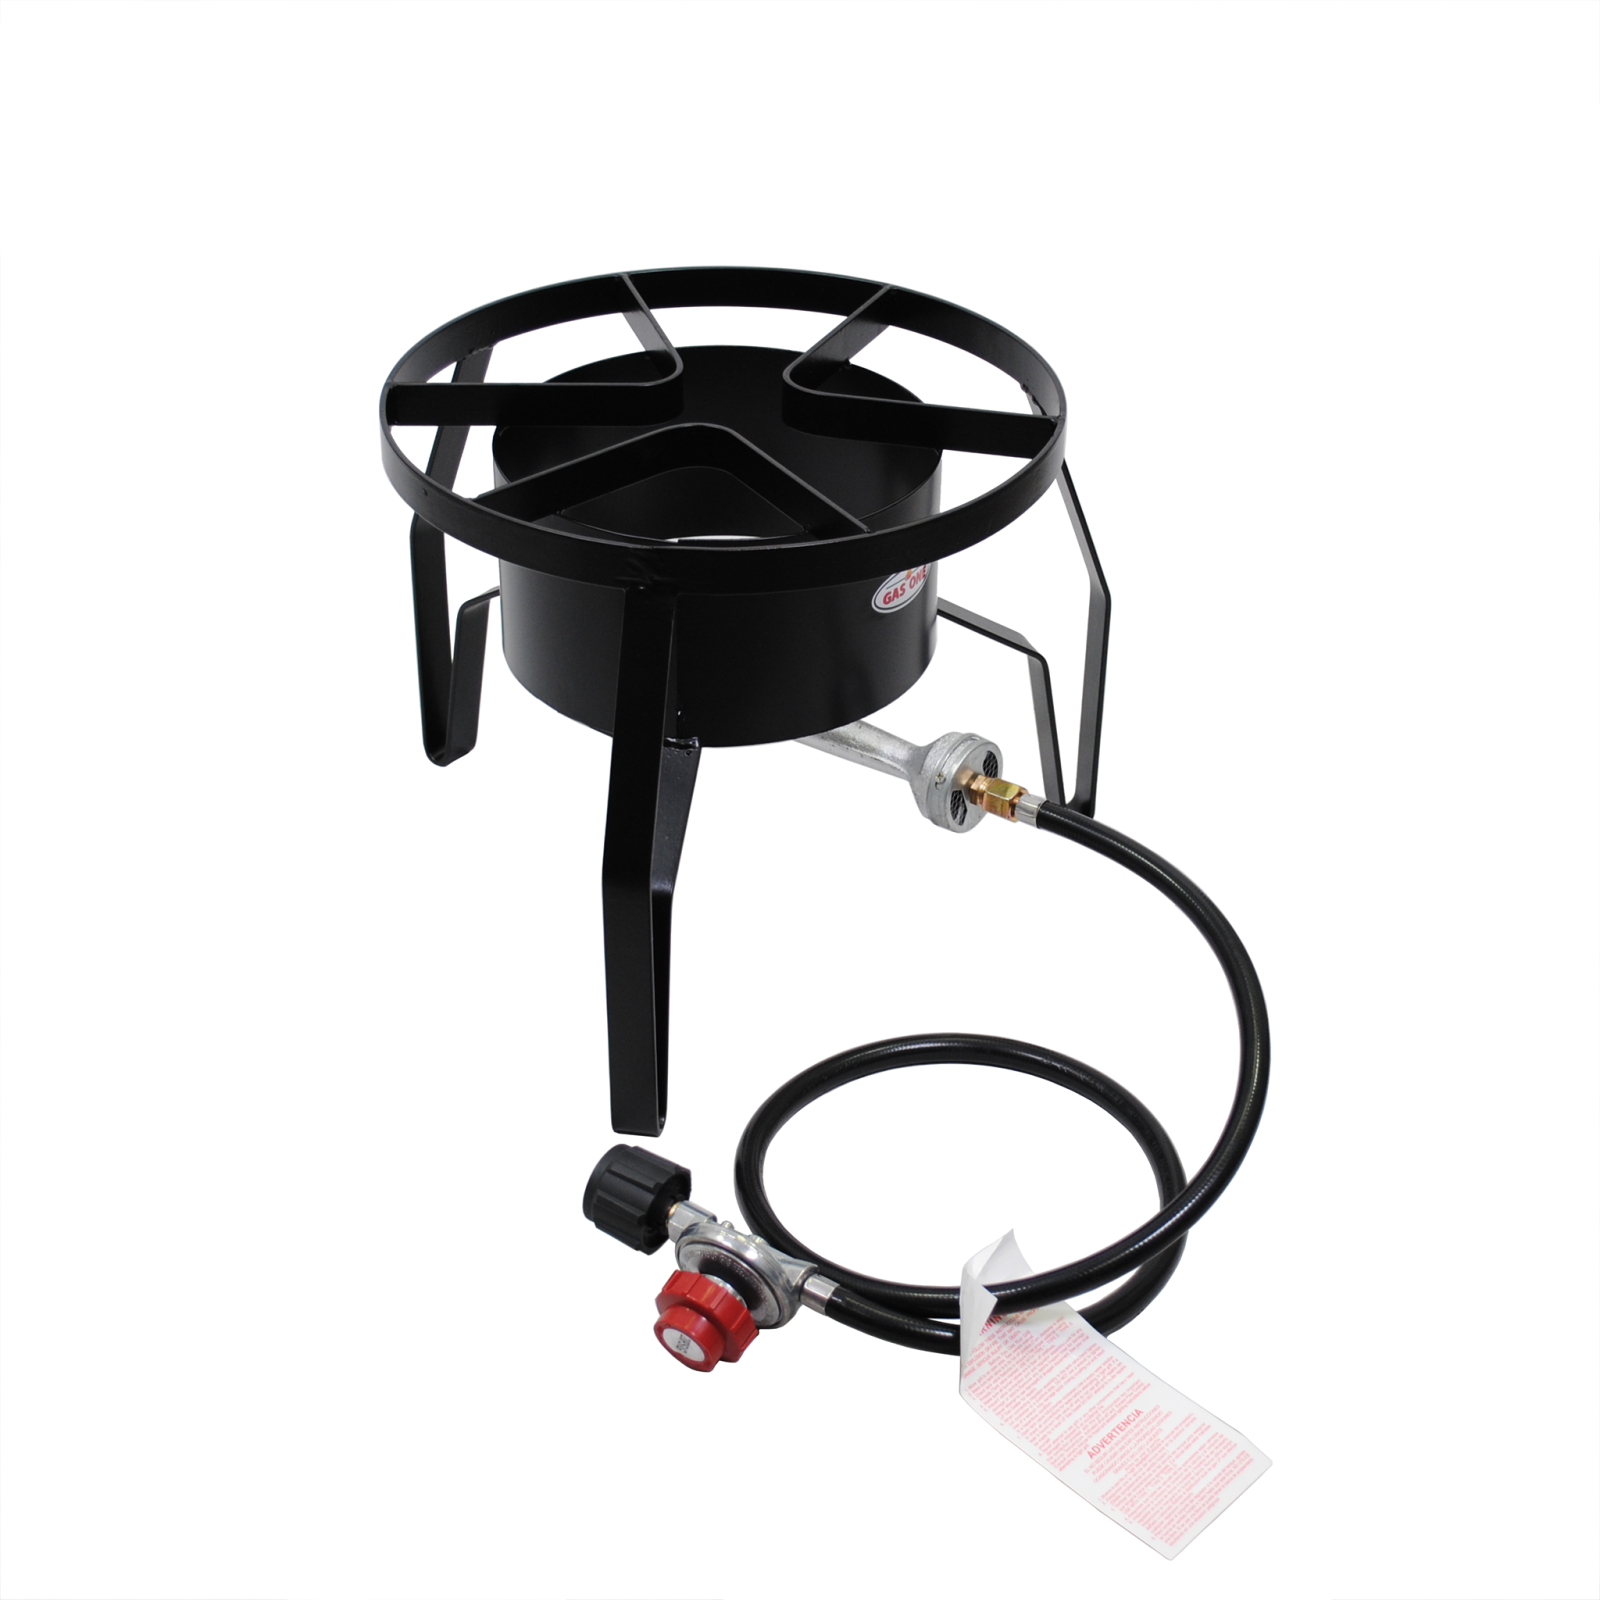 Heavy Duty Portable Propane Single High Pressure Burner Outdoor Round Cooker/ Camp Stove 80,000 BTU by Gas One